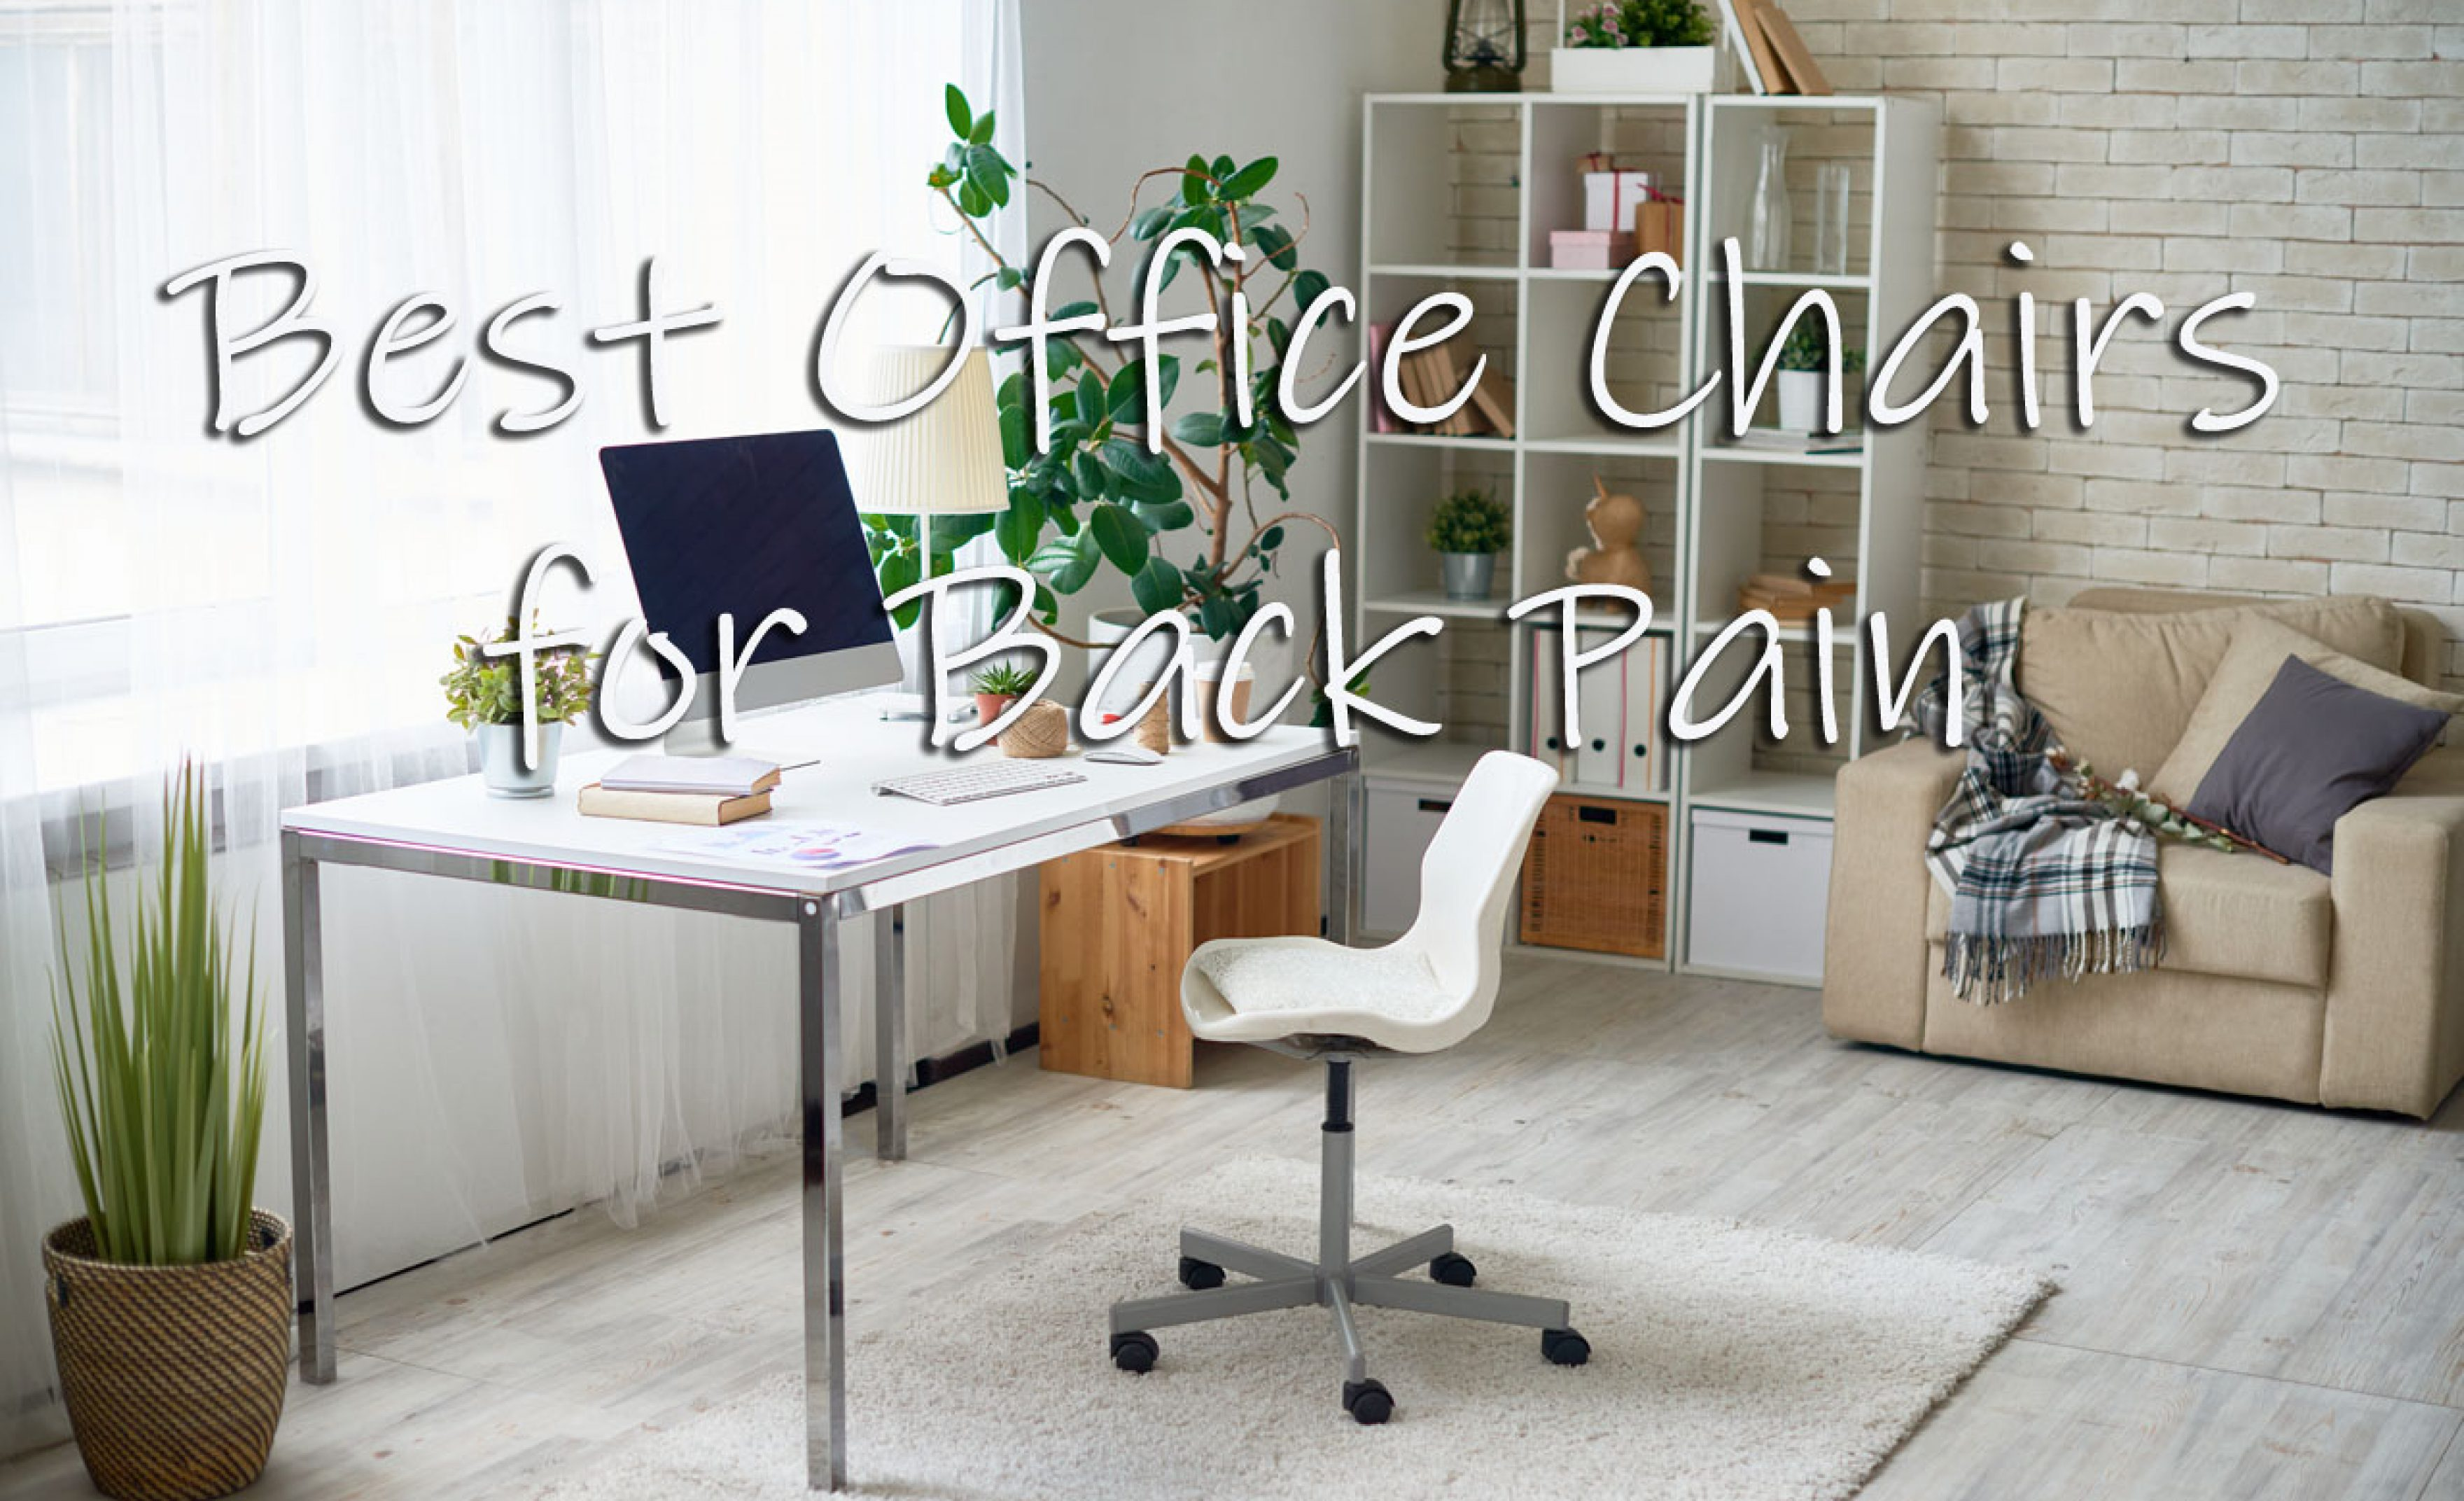 Best Office Chairs For Back Pain El Paso Texas